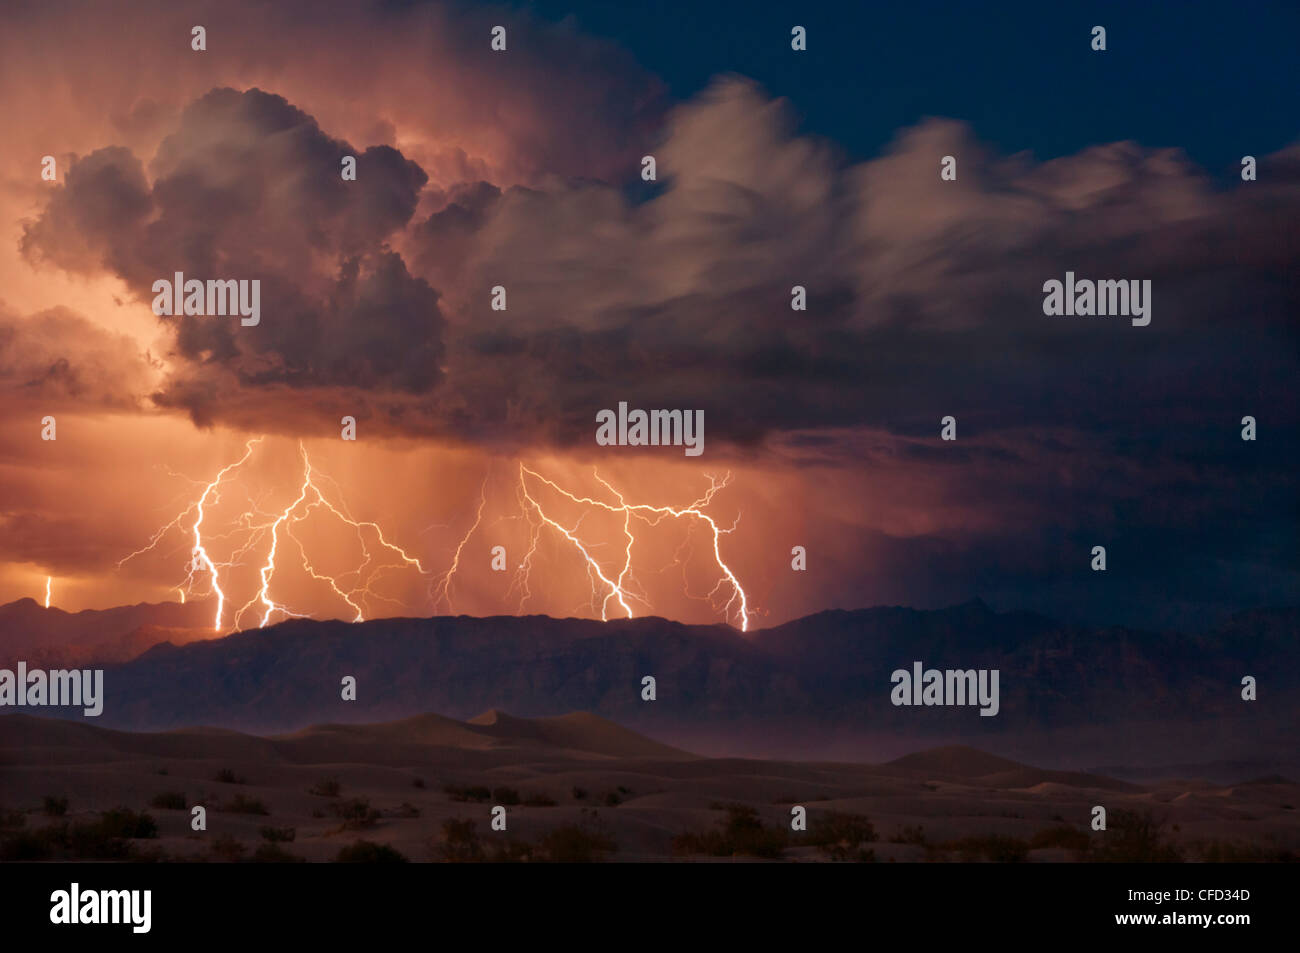 Electrical storm over the Amargosa Range, Mesquite Flats, Stovepipe Wells, Death Valley National Park, California, - Stock Image